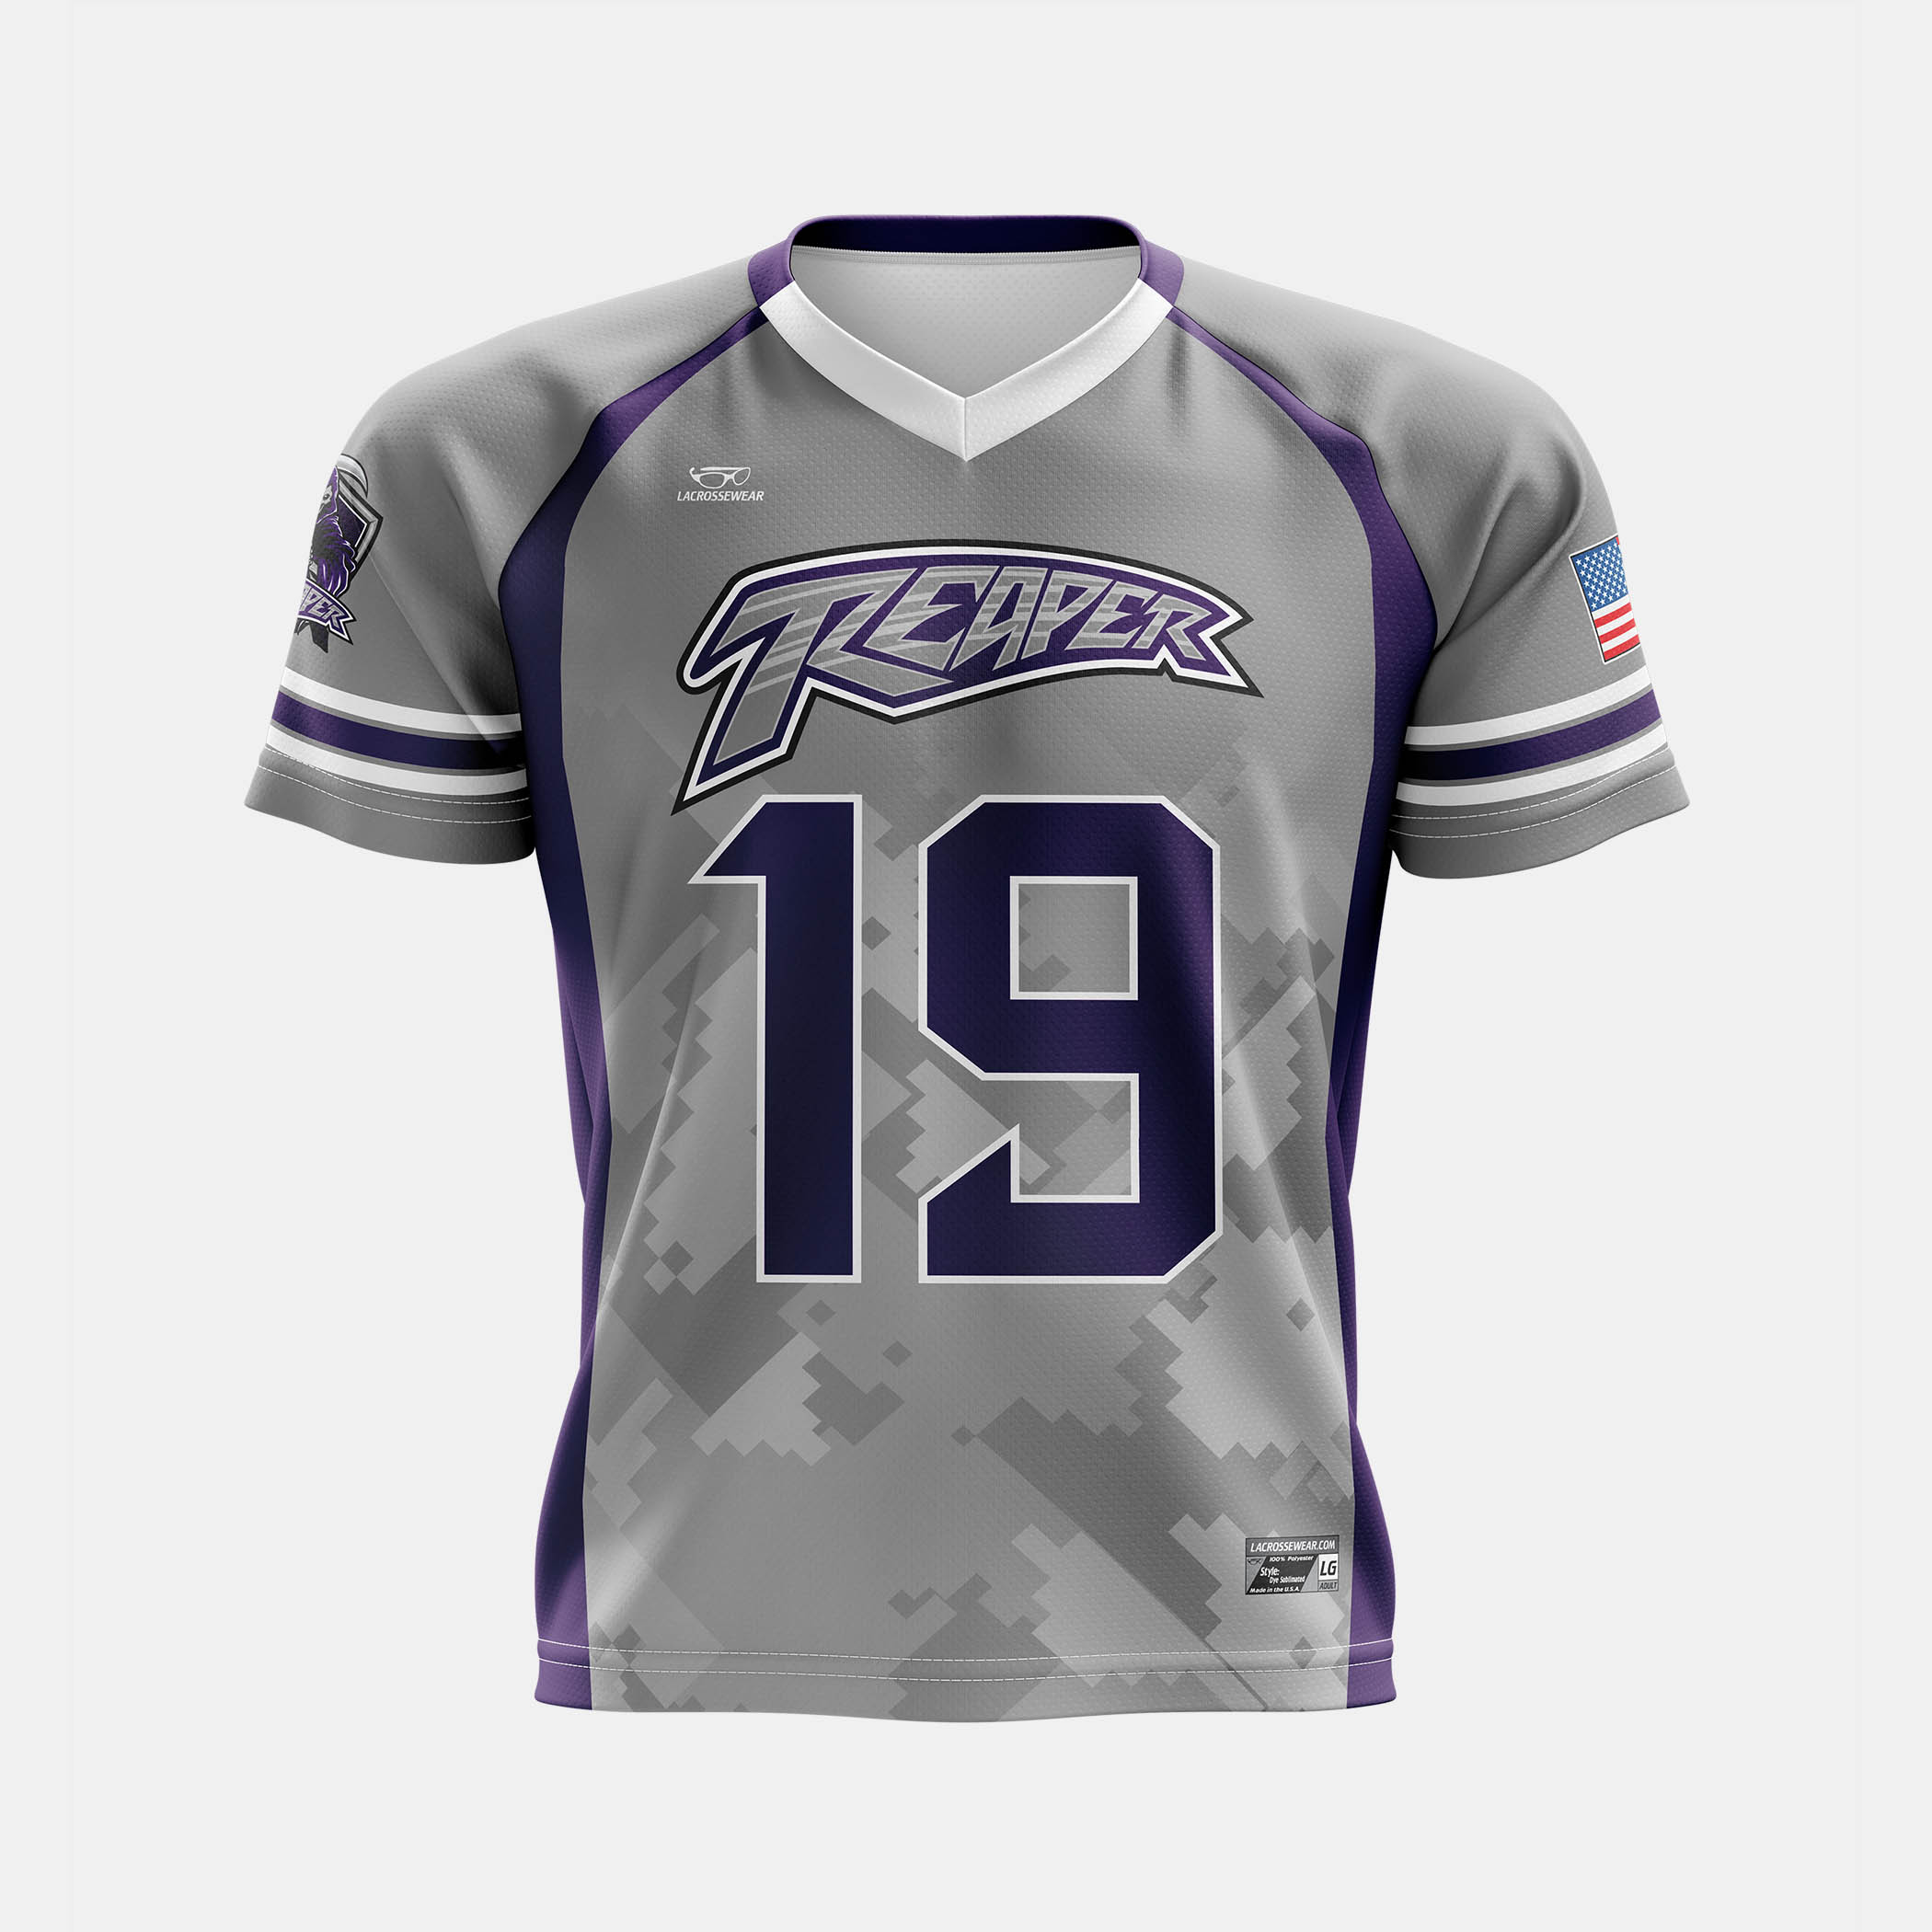 Reaper lax Jersey Mock Front View